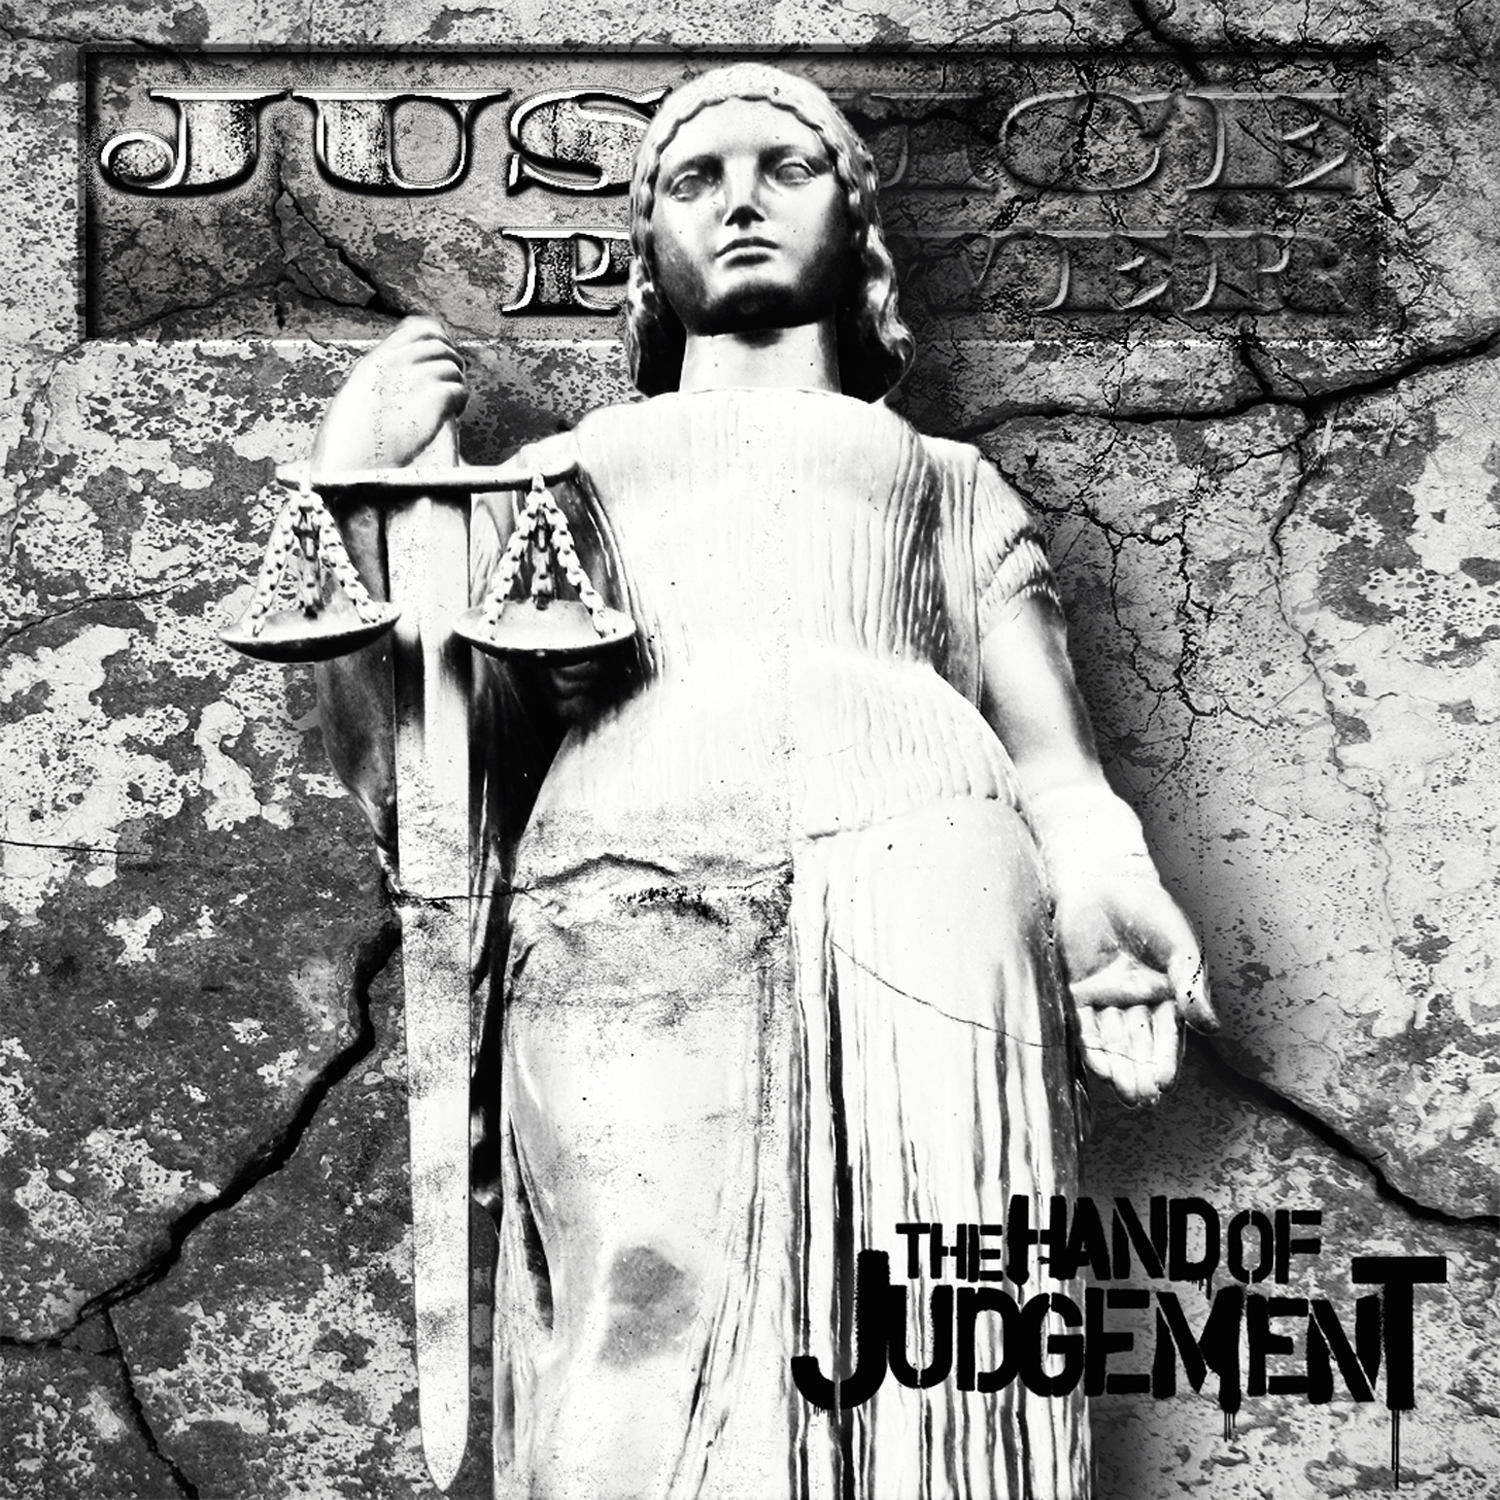 Jus-P – Hand of Judgement now in stores.